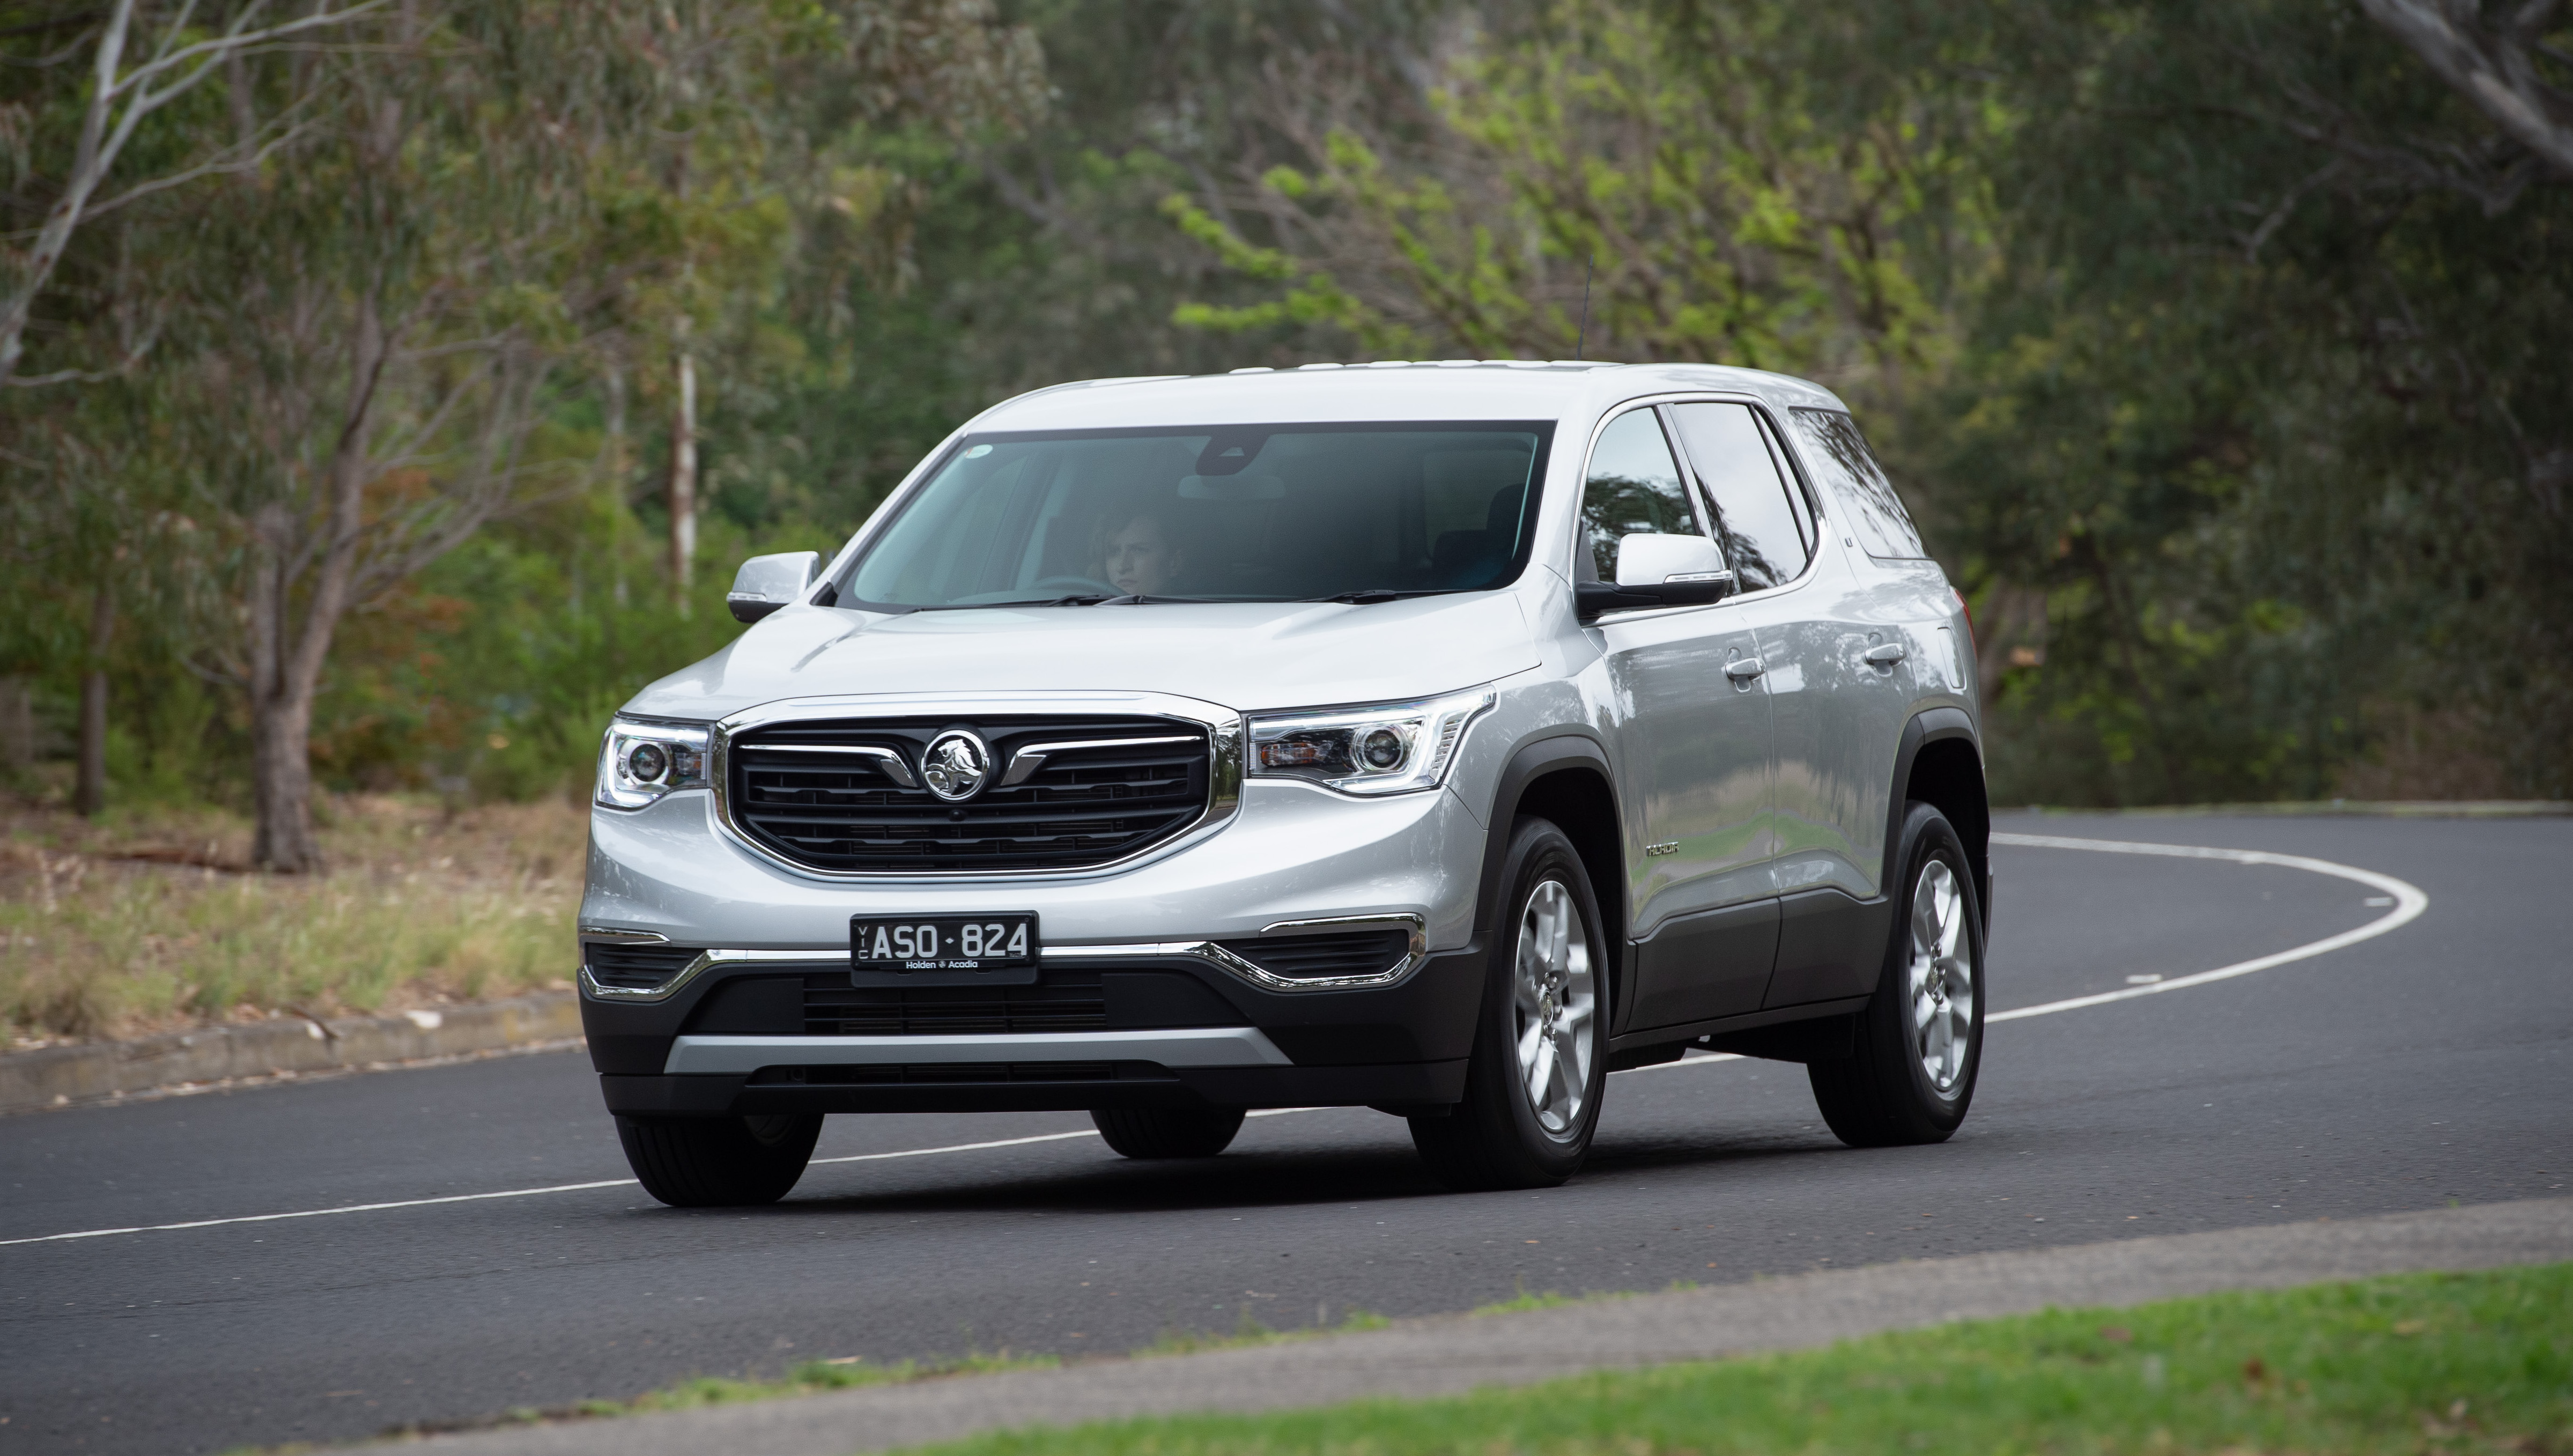 2019 Holden Acadia LT AWD review | CarAdvice